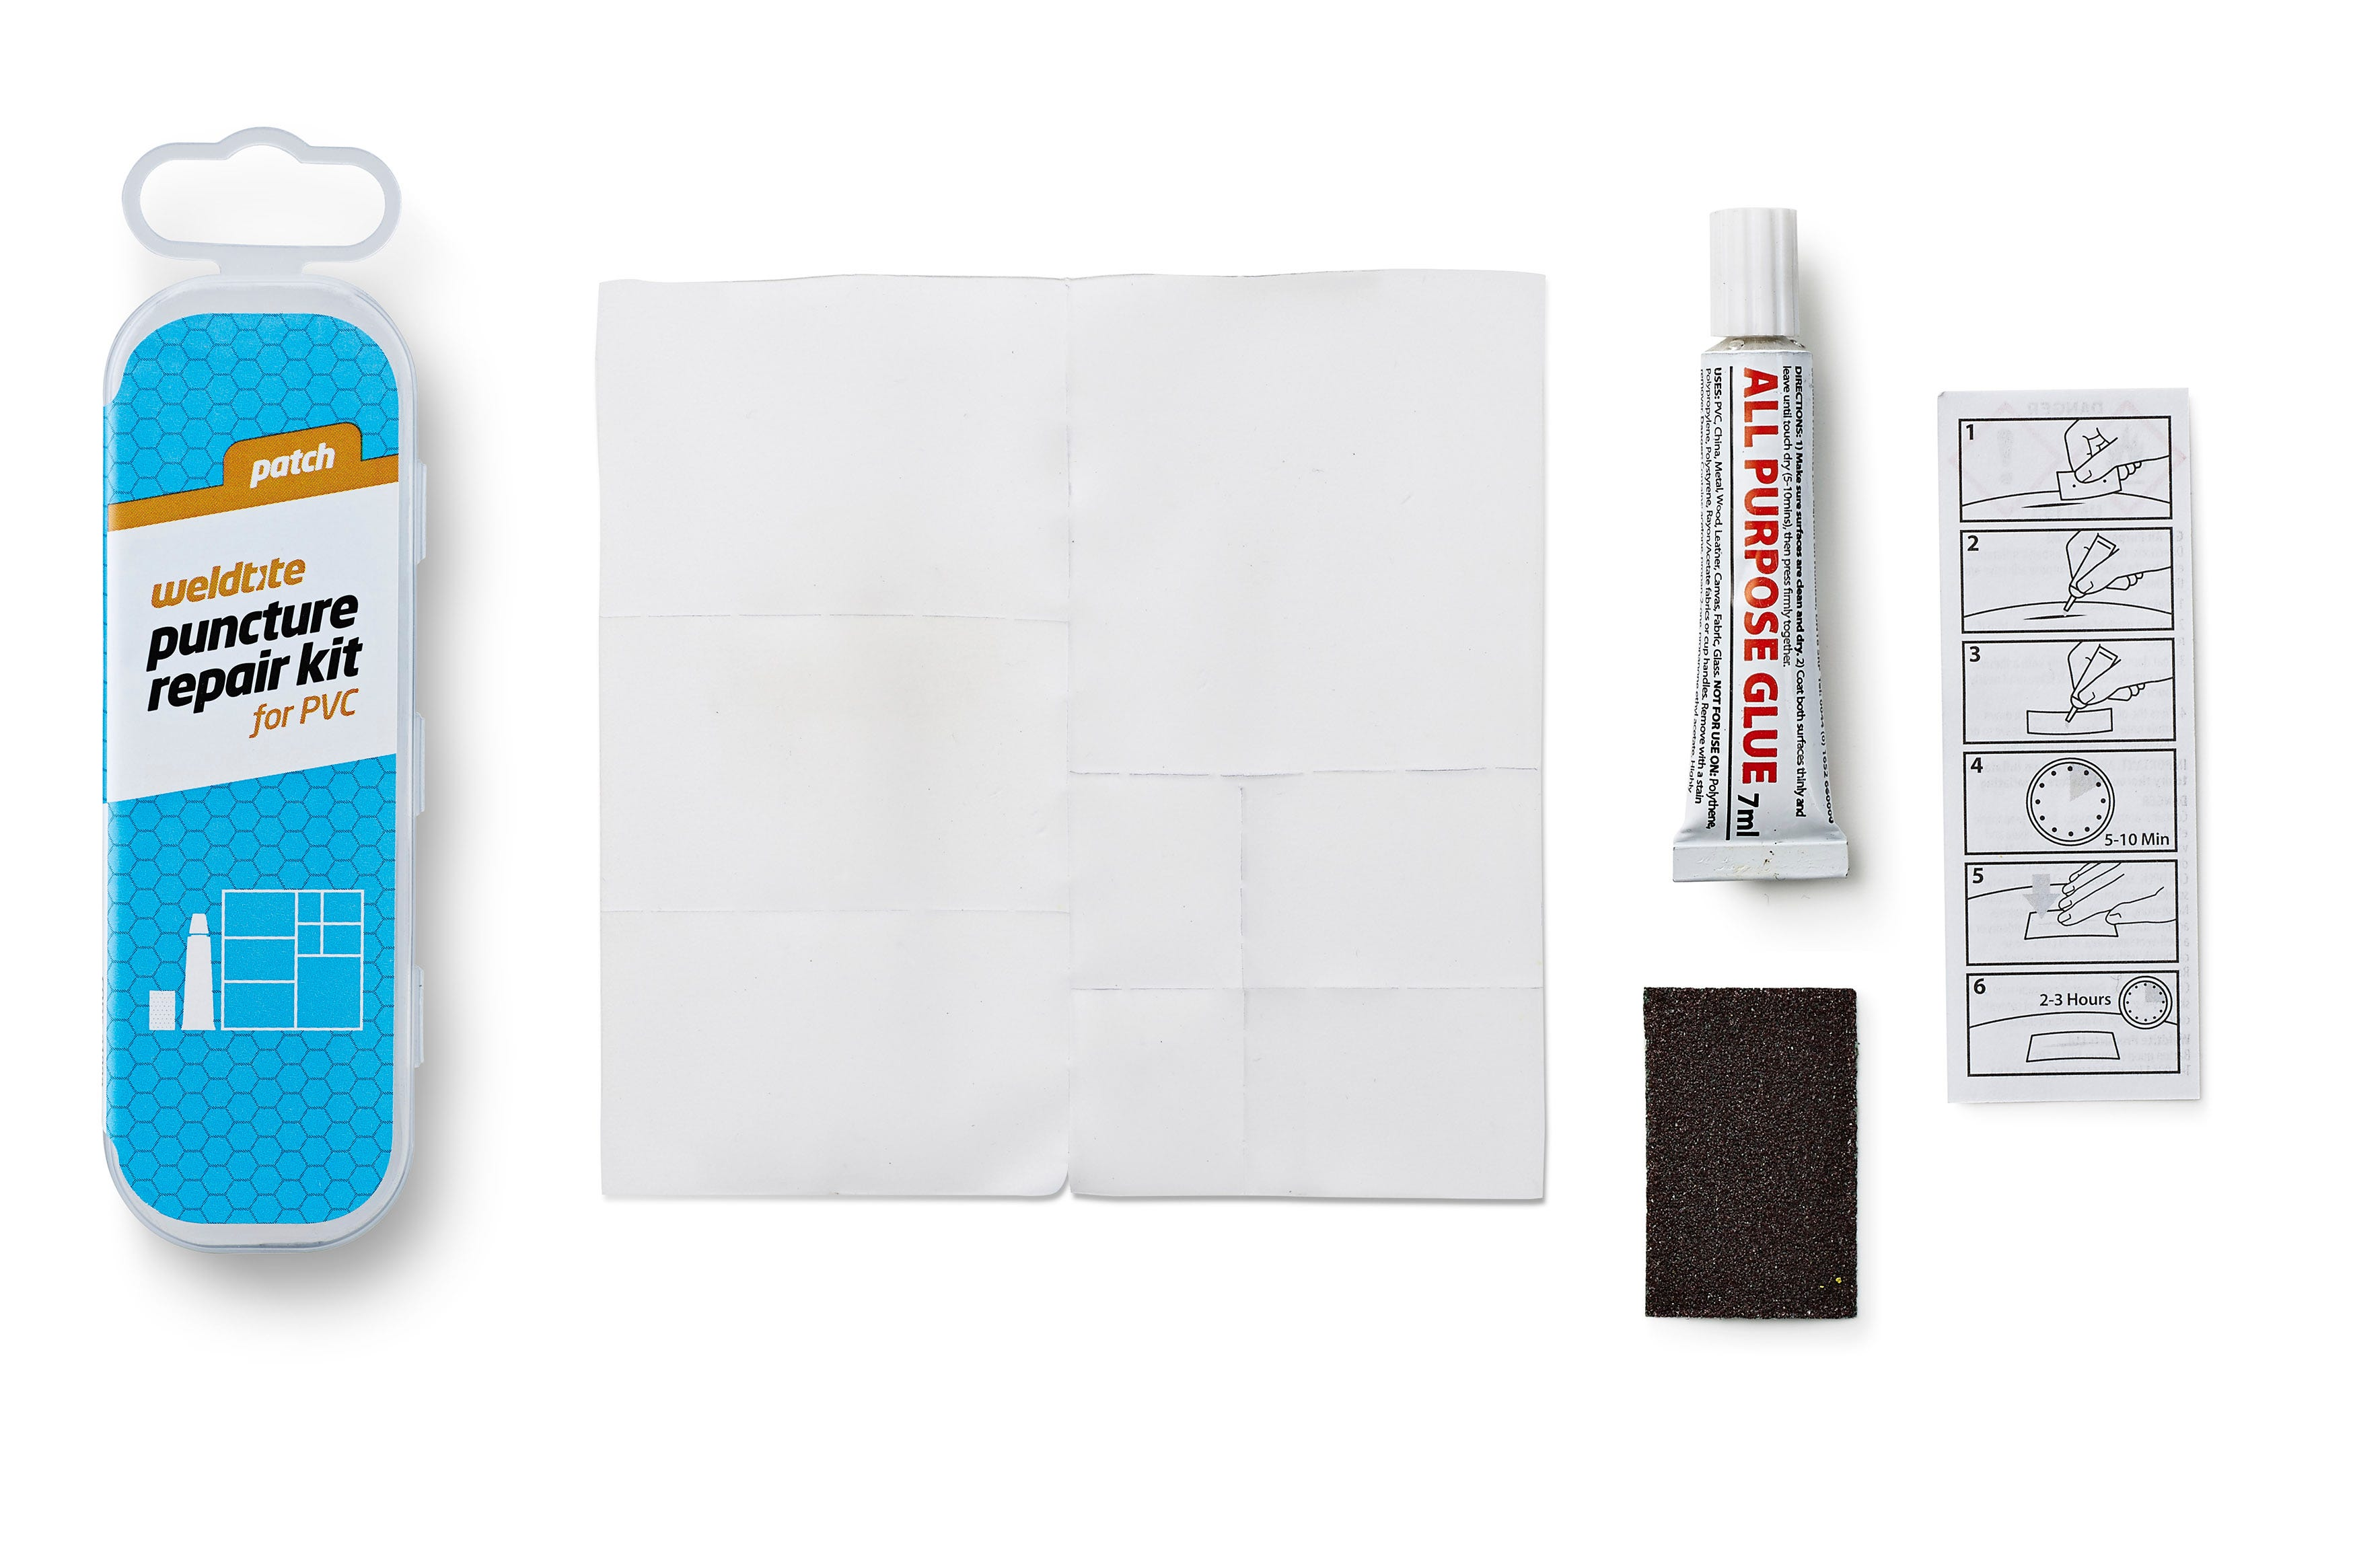 Weldtite Patch Puncture Repair Kit for PVC